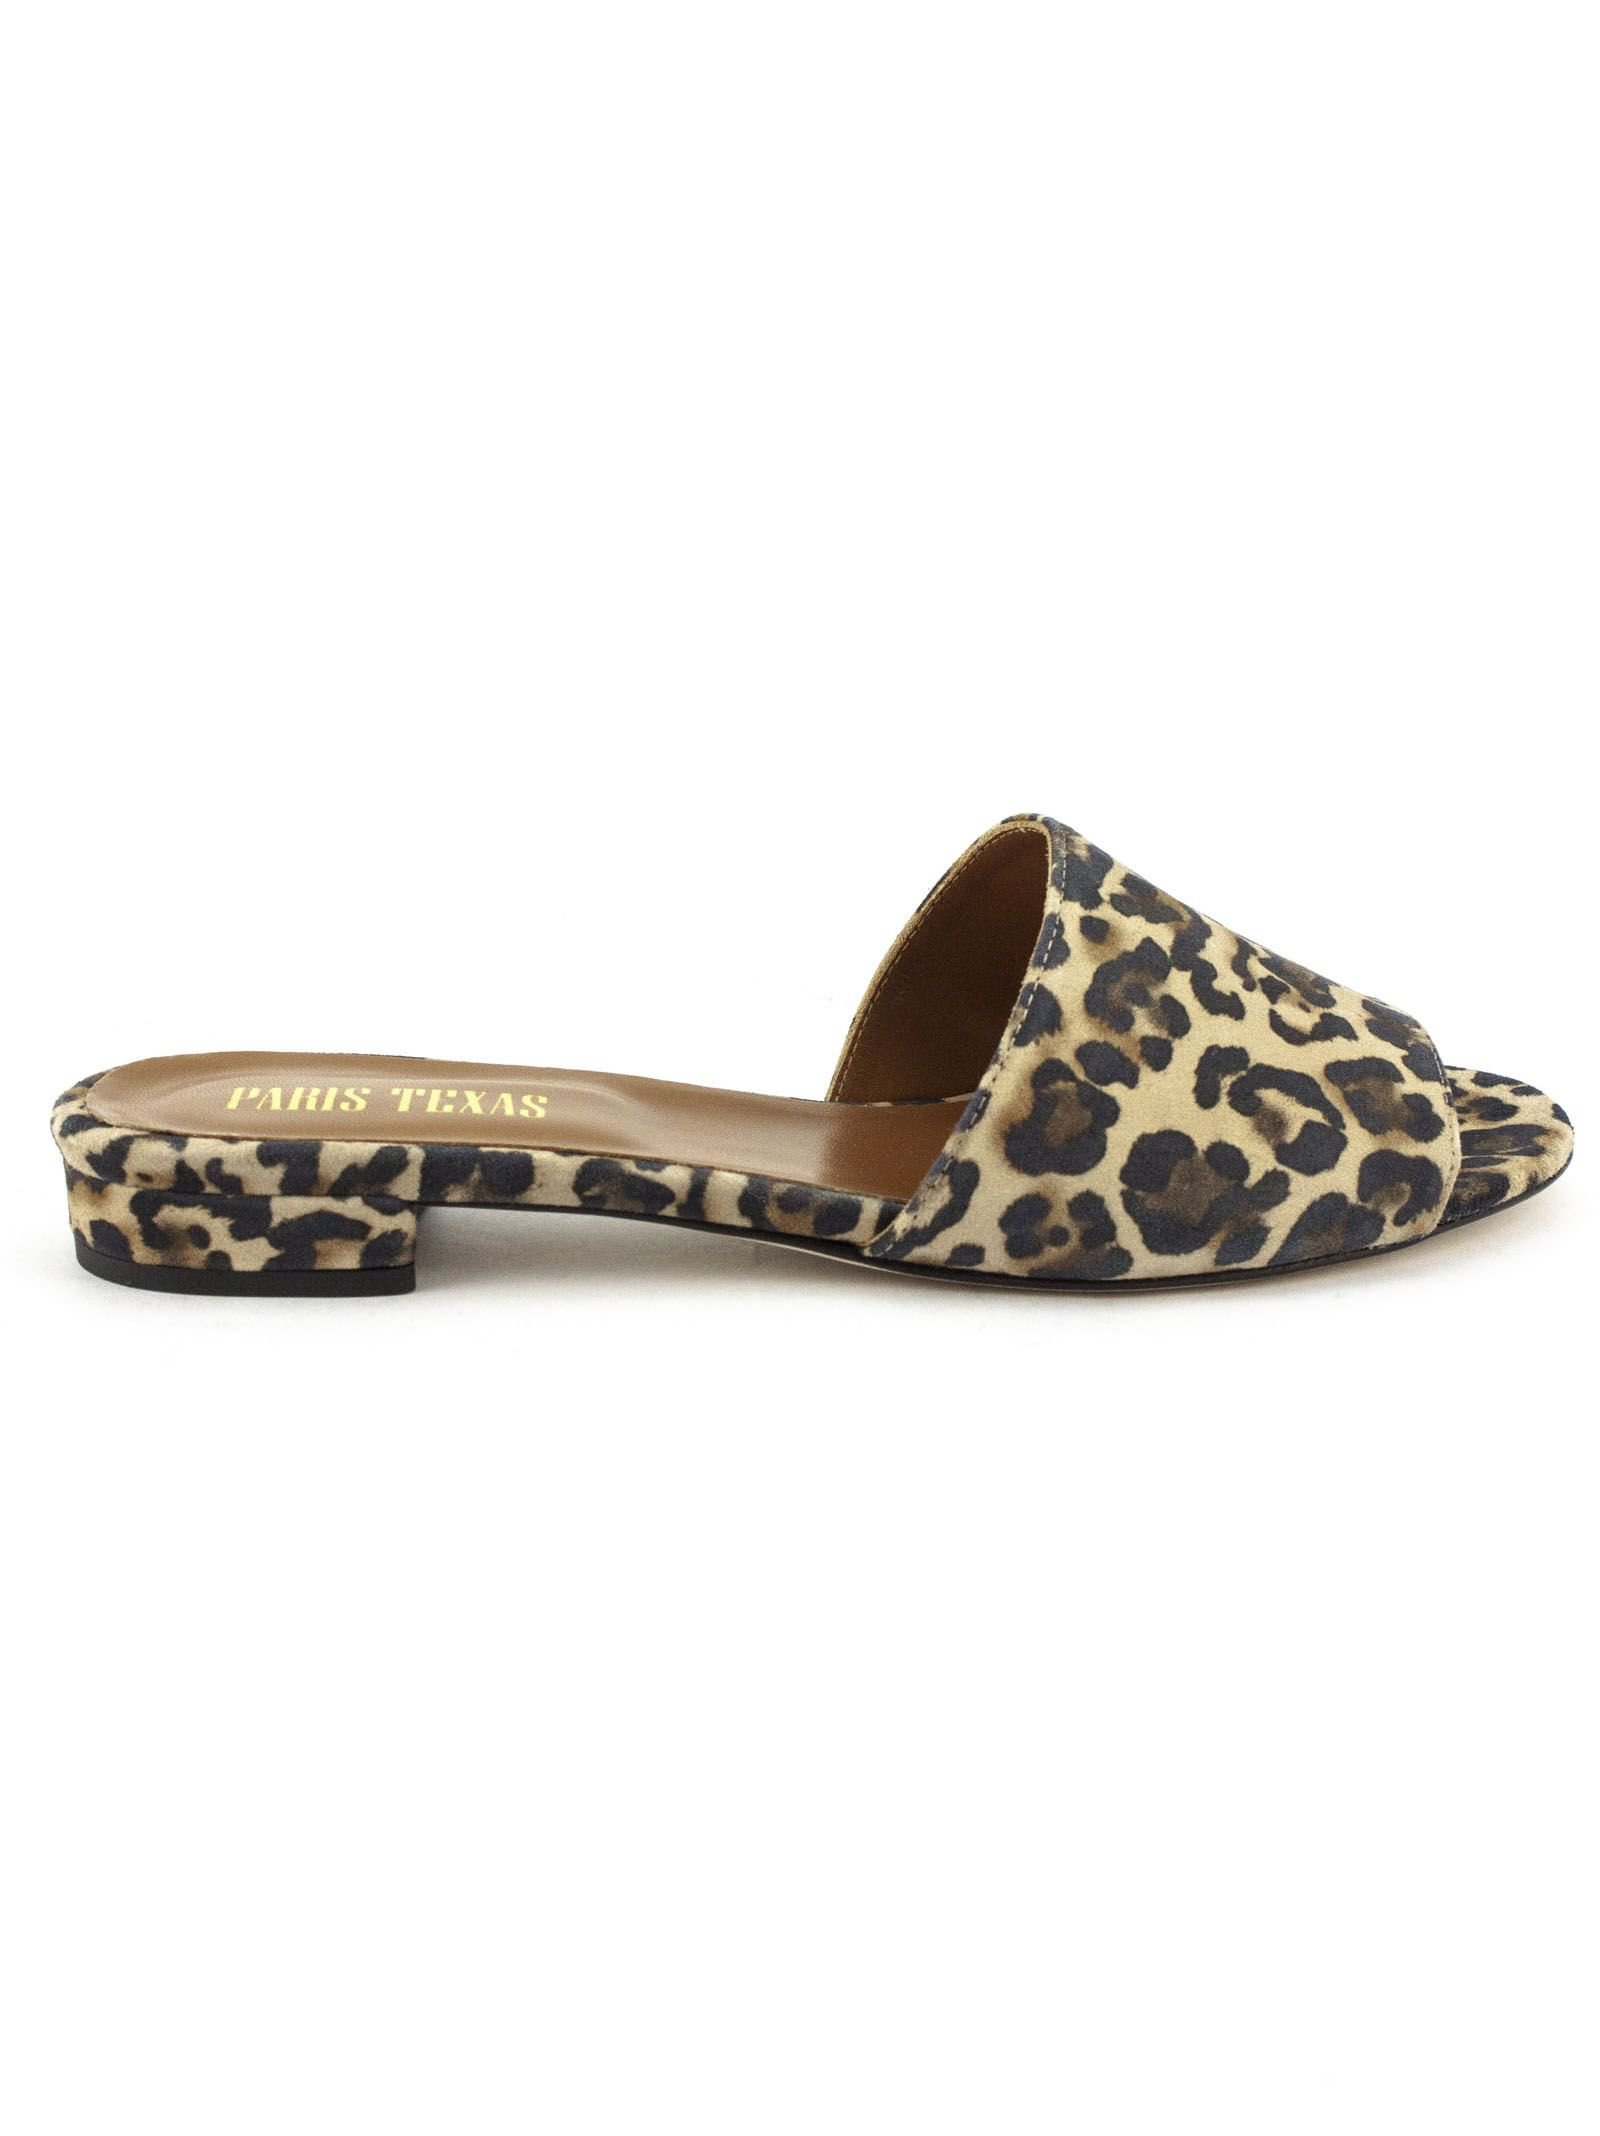 Paris Texas Brown Leather And Suede Slip-on Sandals